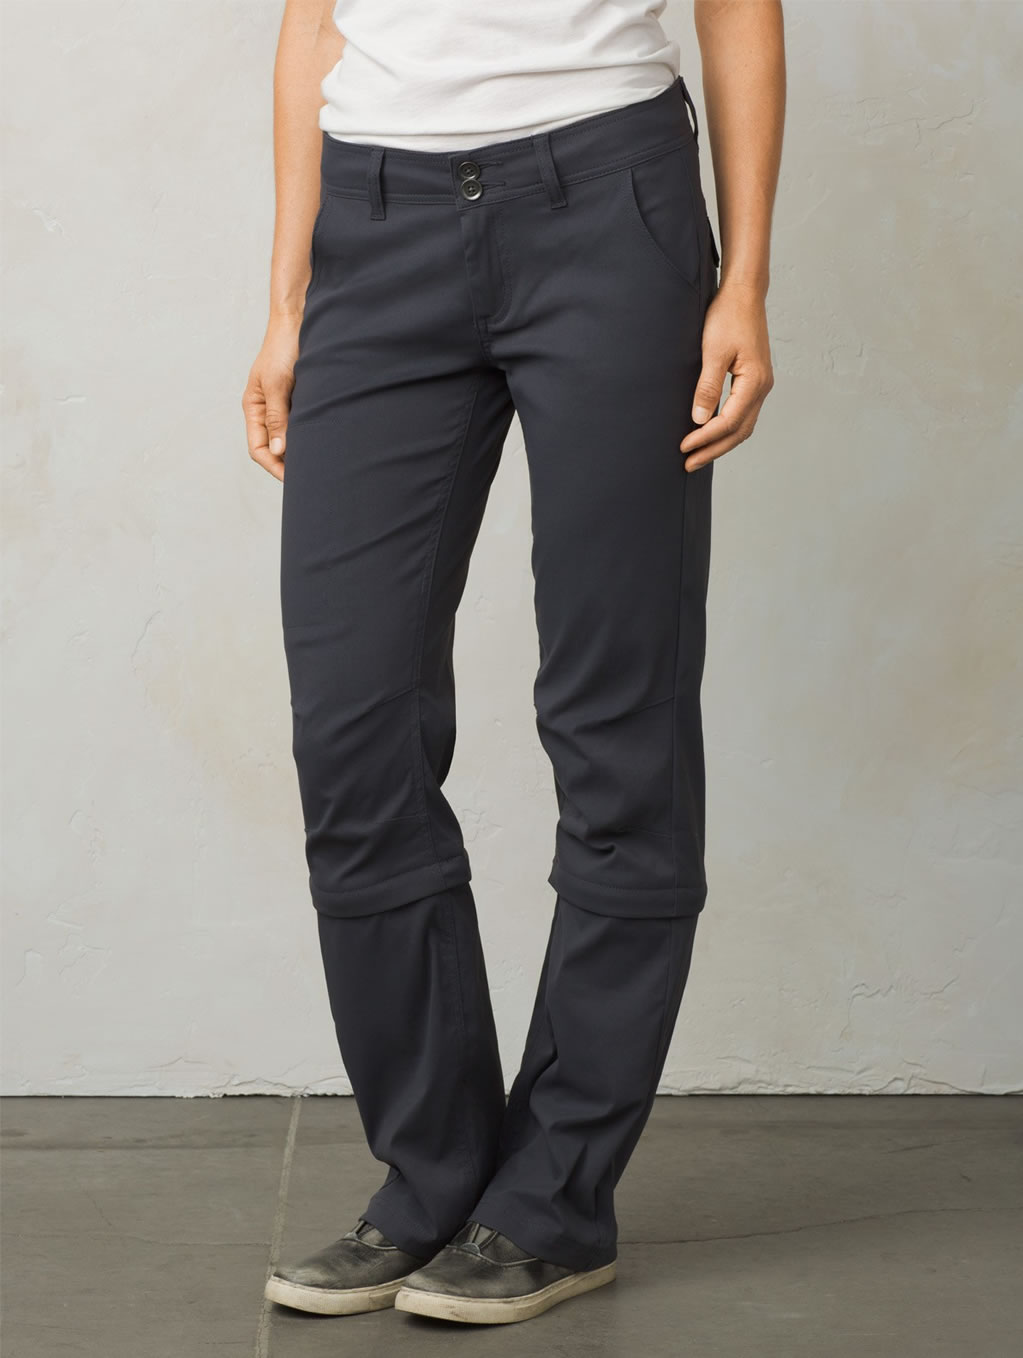 Women's Halle Convertible Pant by Prana